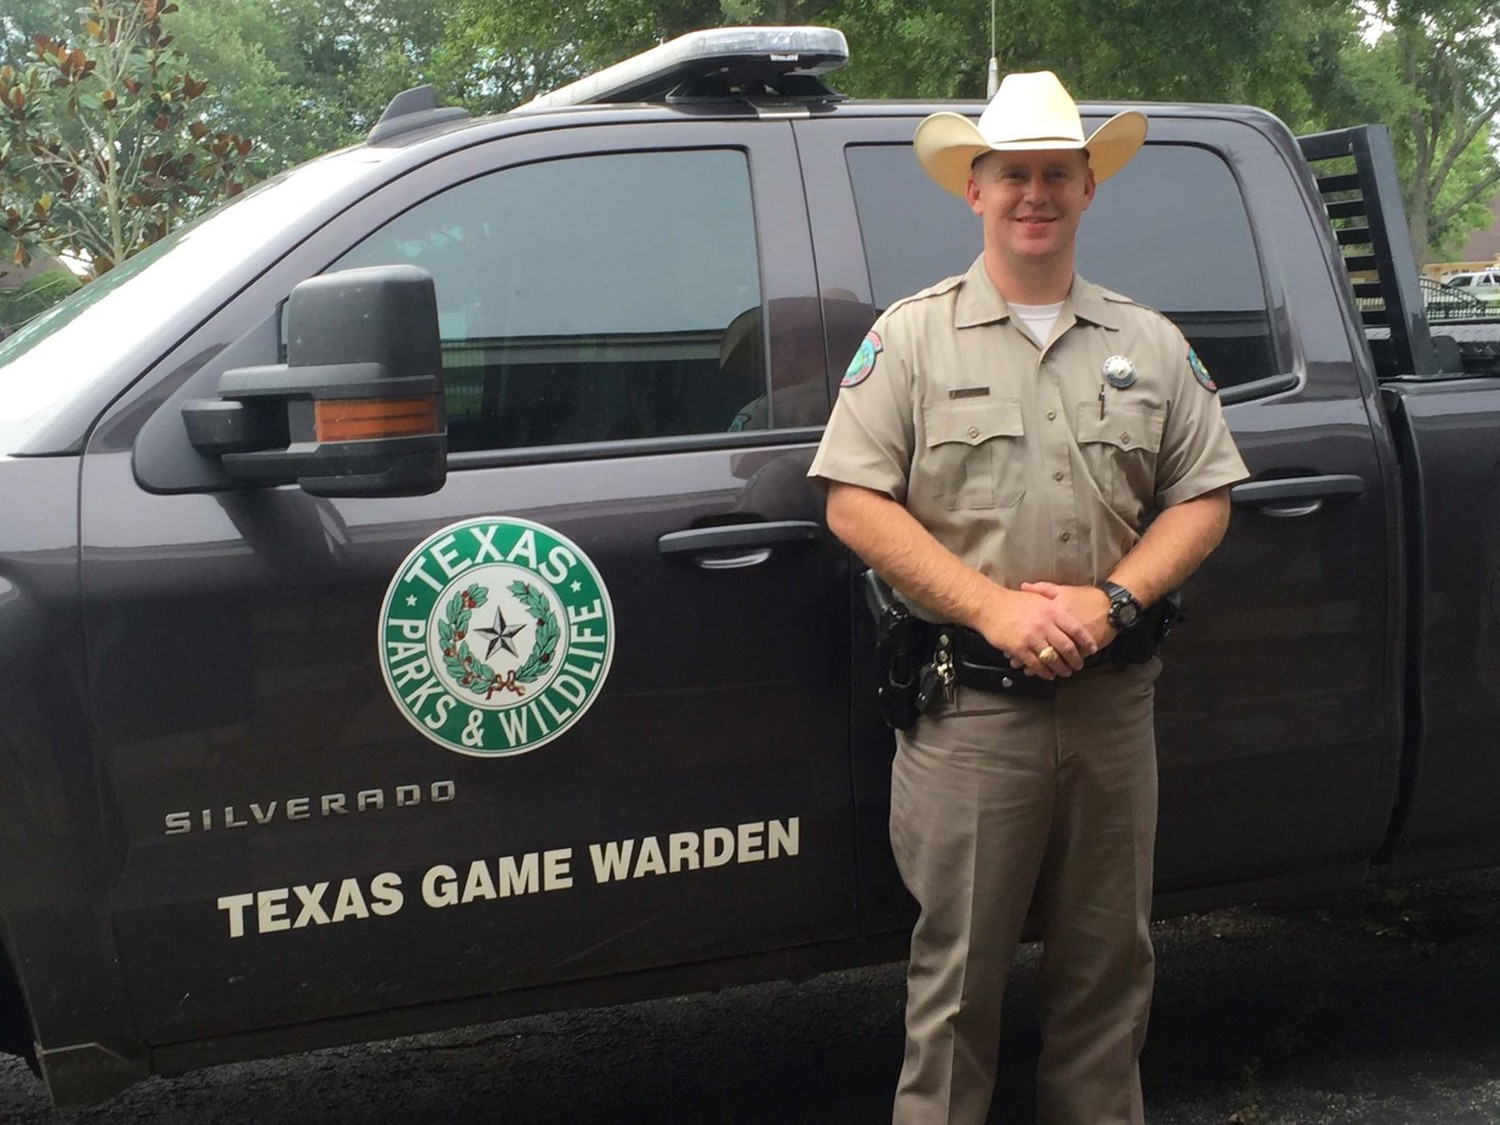 career of a game warden Learn more about game warden careers learn about these cool jobs and thousands of other great employment options.